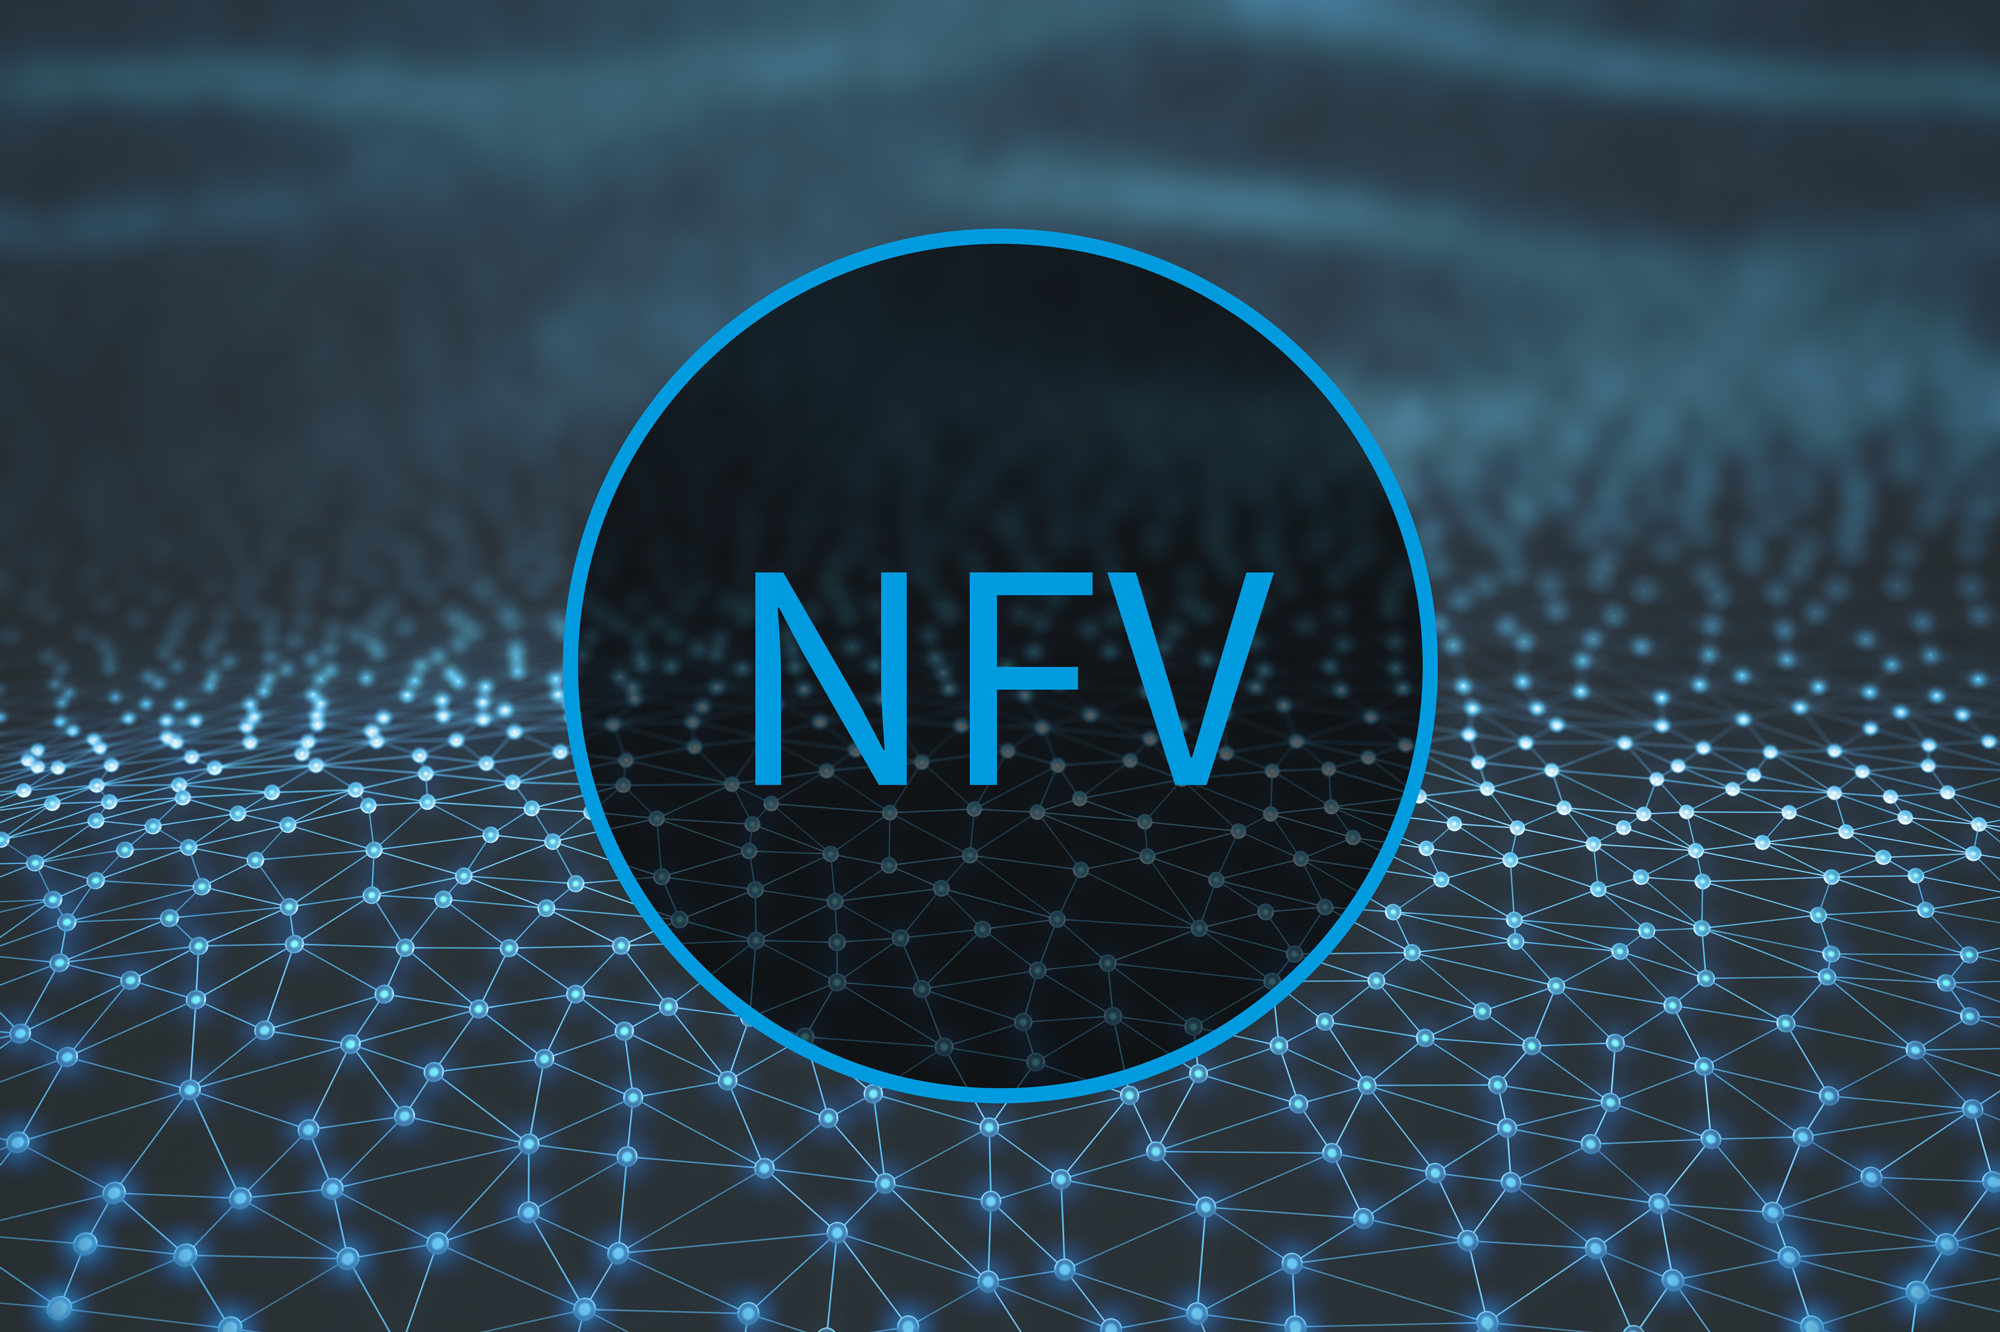 NFV: How it Provides Agility and Rapid Response